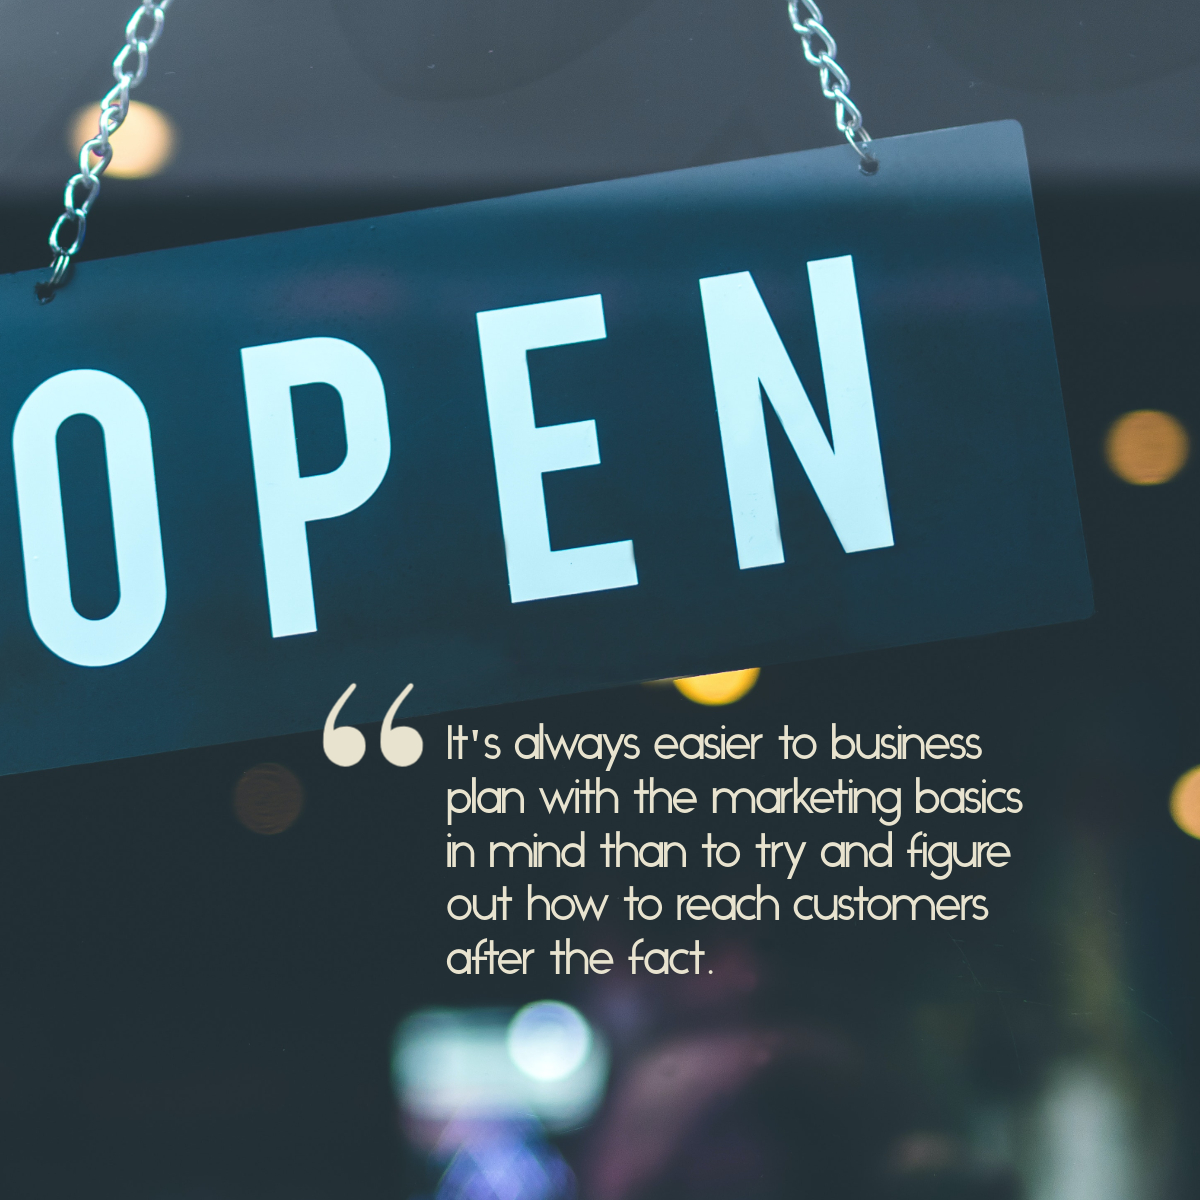 "Small business open sign, with the text, ""It's always easier to business plan with the marketing basics in mind than try and figure out how to reach customers after the fact."